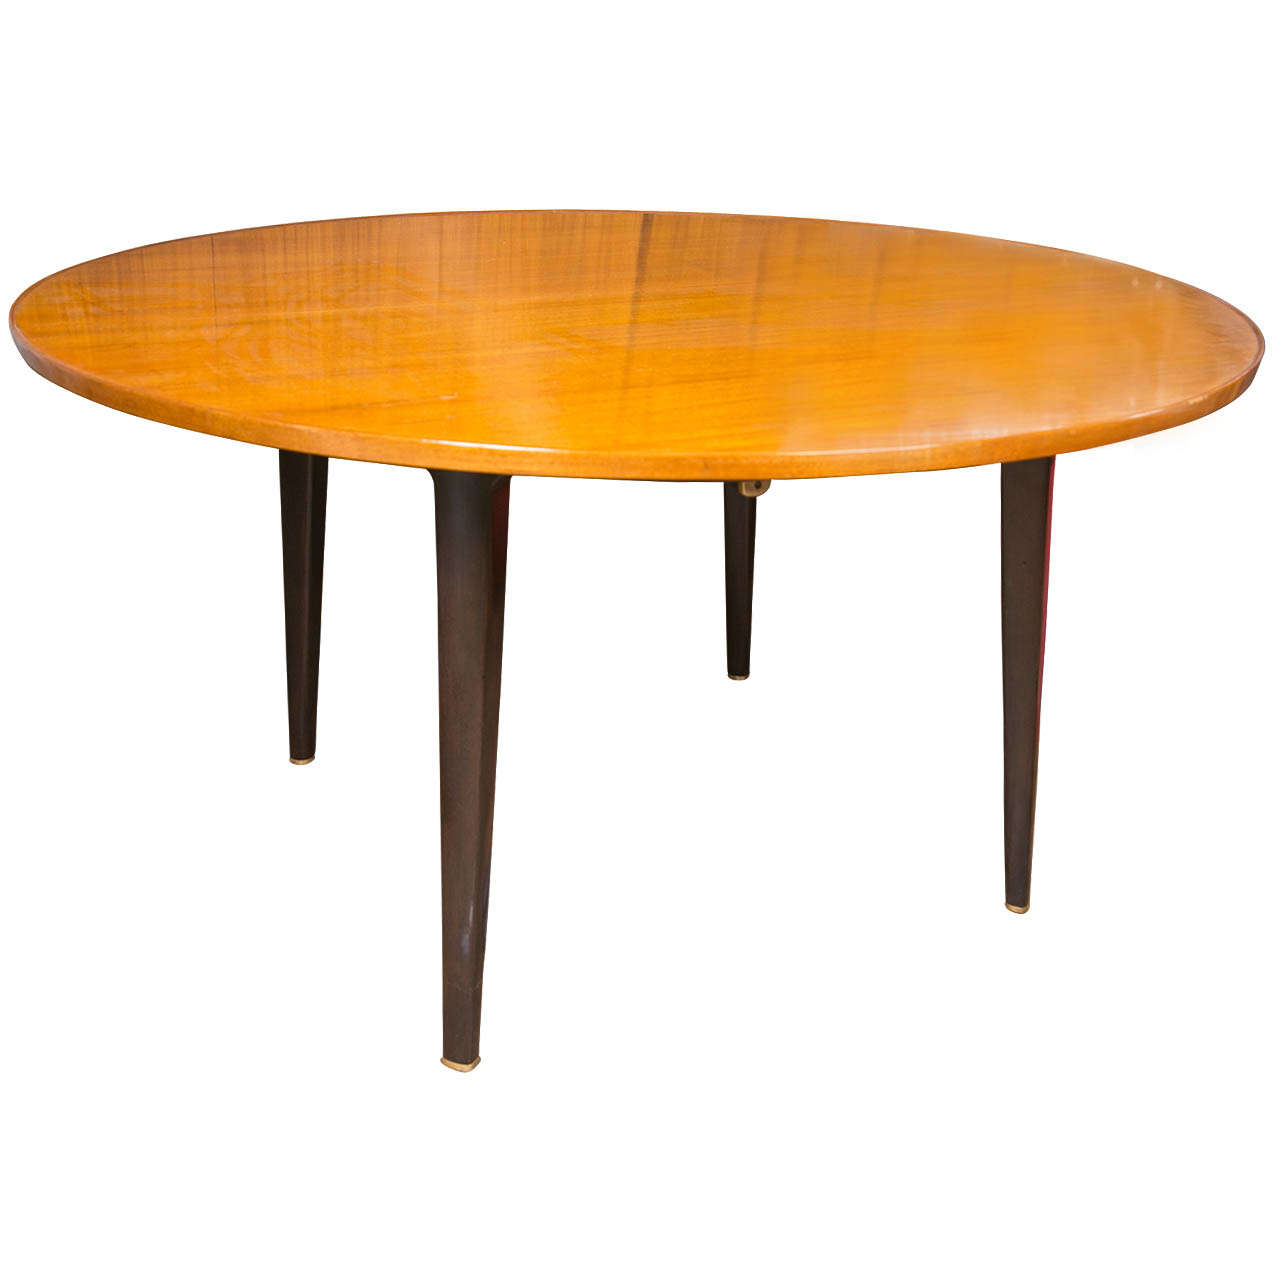 Edward wormley round extension dining table by dunbar at for Round extension dining table